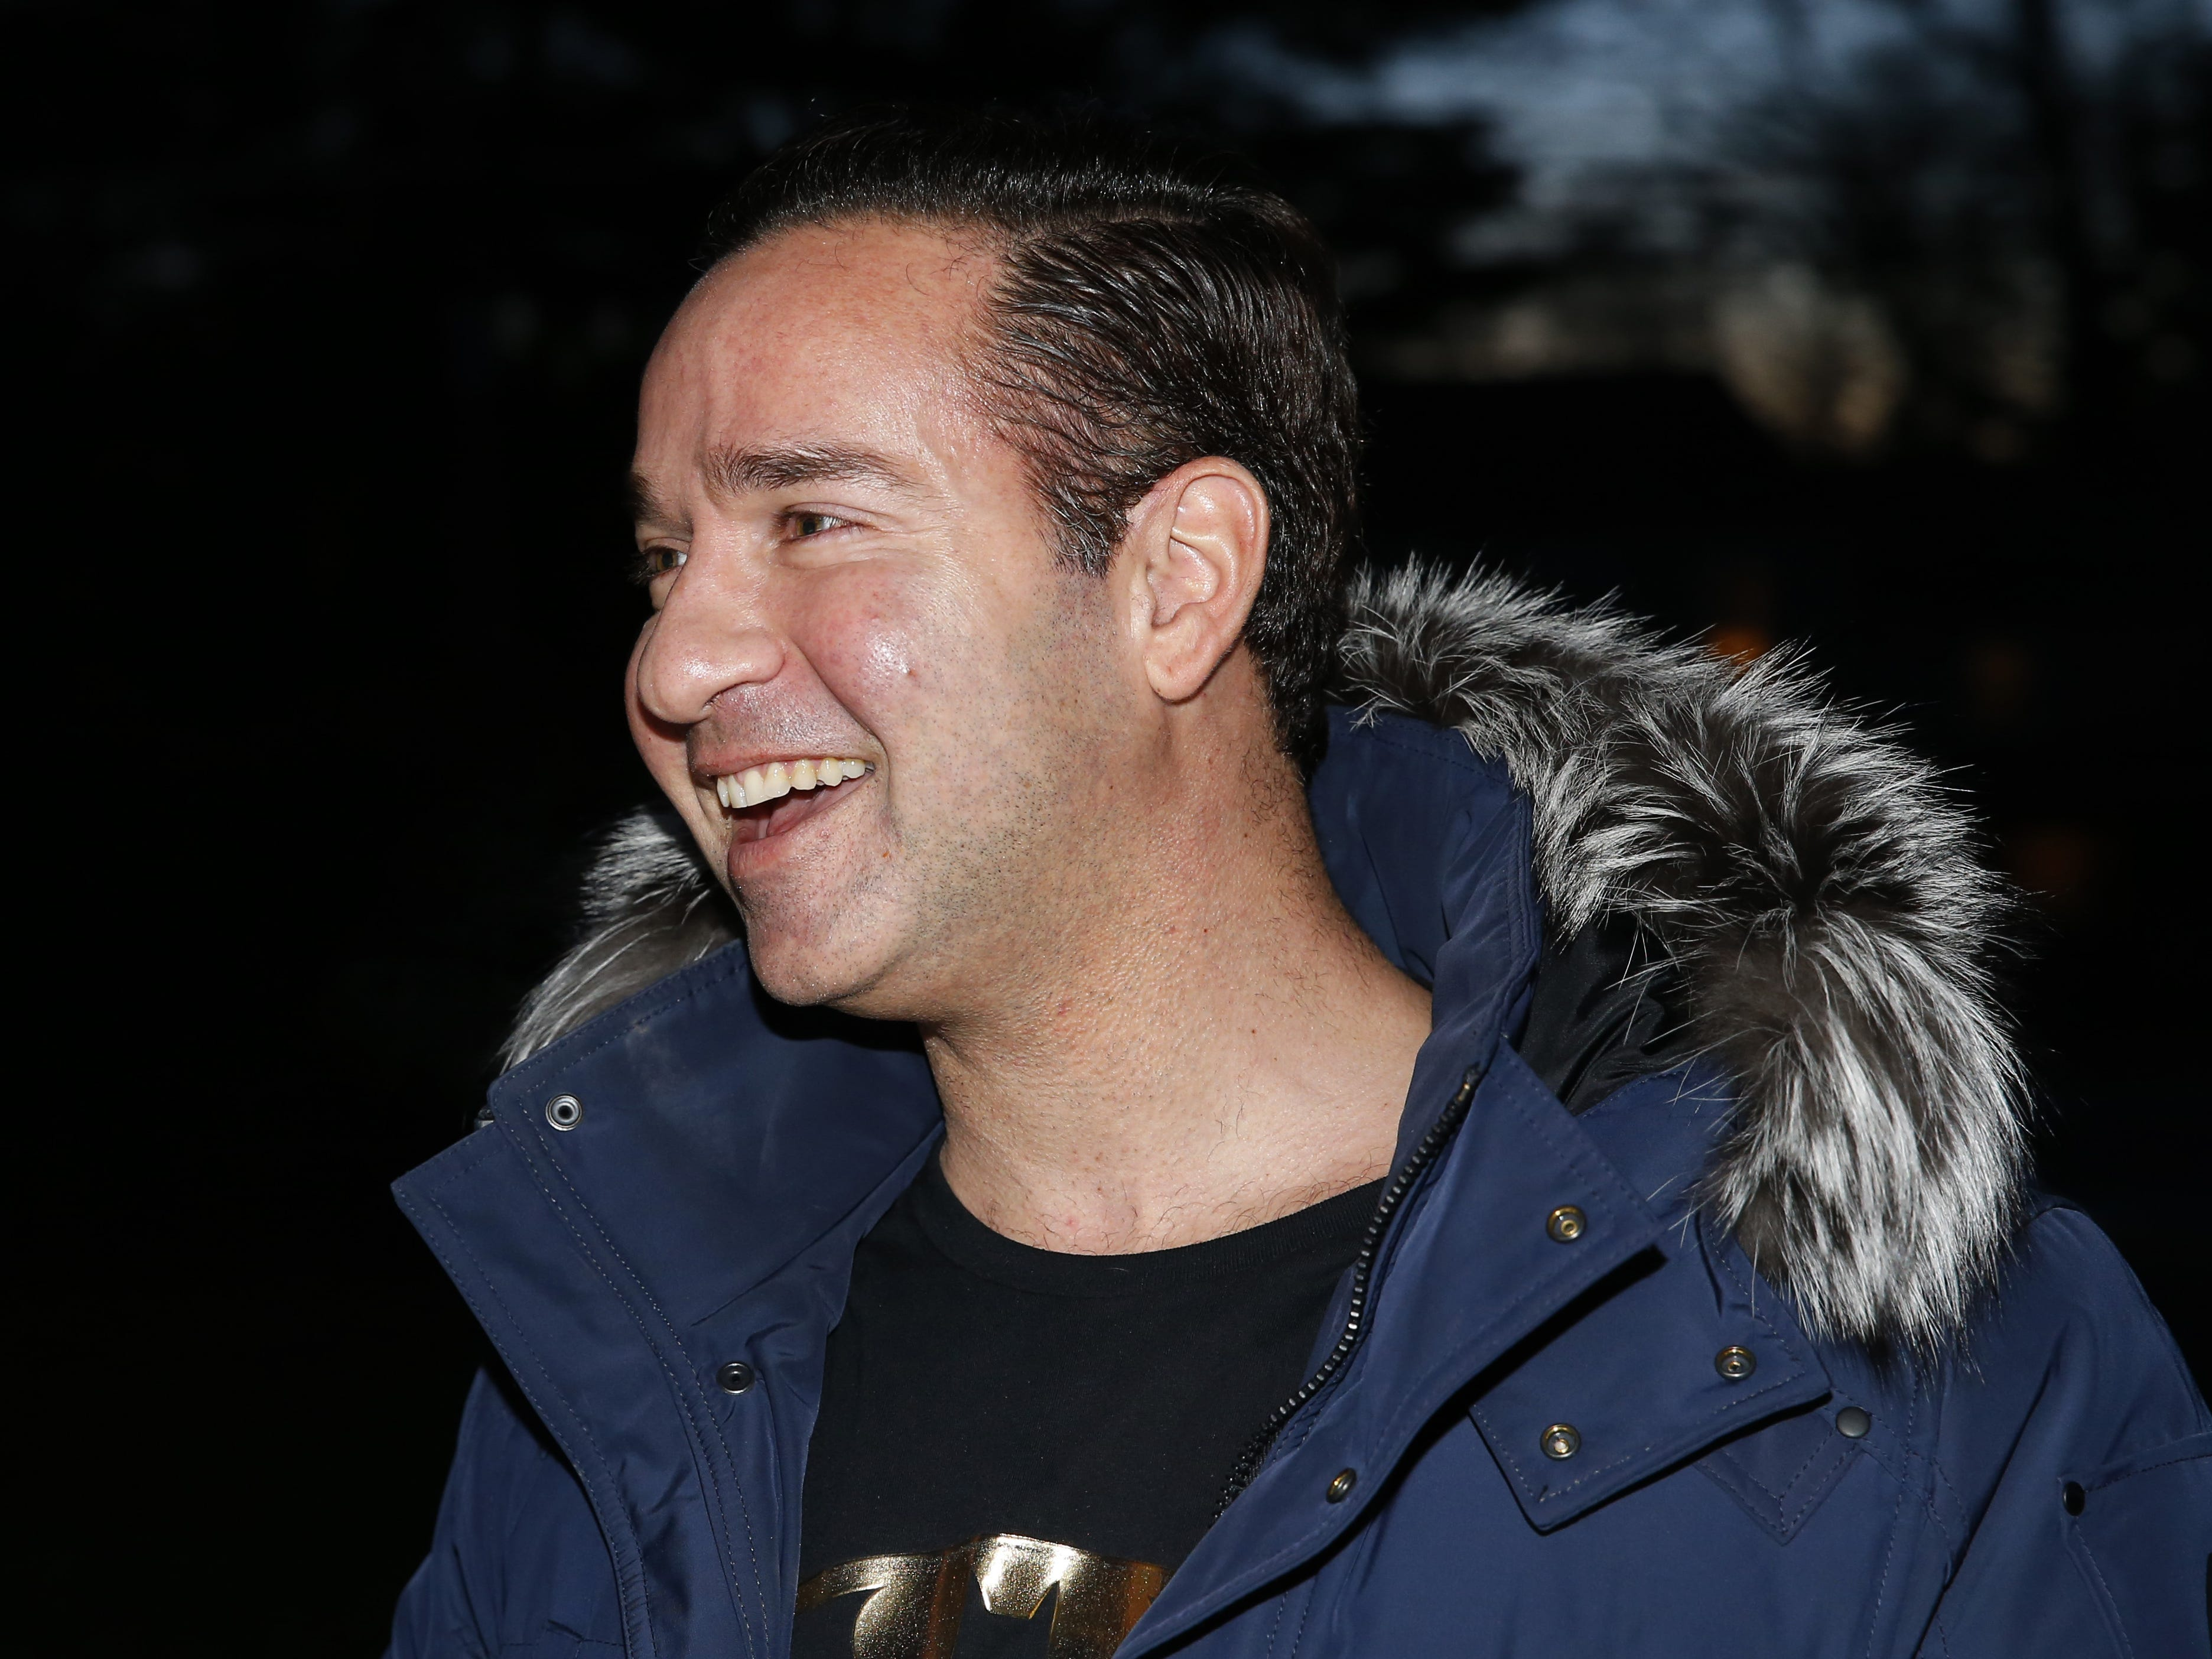 """Mike""""The Situation """" Sorrentino of MTV's Jersey Shore fame visits Phoenix Recovery house to speak to guests attending the annual Christmas party. Eatontown, N.J.  Wednesday, December 19, 2018 Noah K. Murray-Correspondent/Asbury Park Press"""